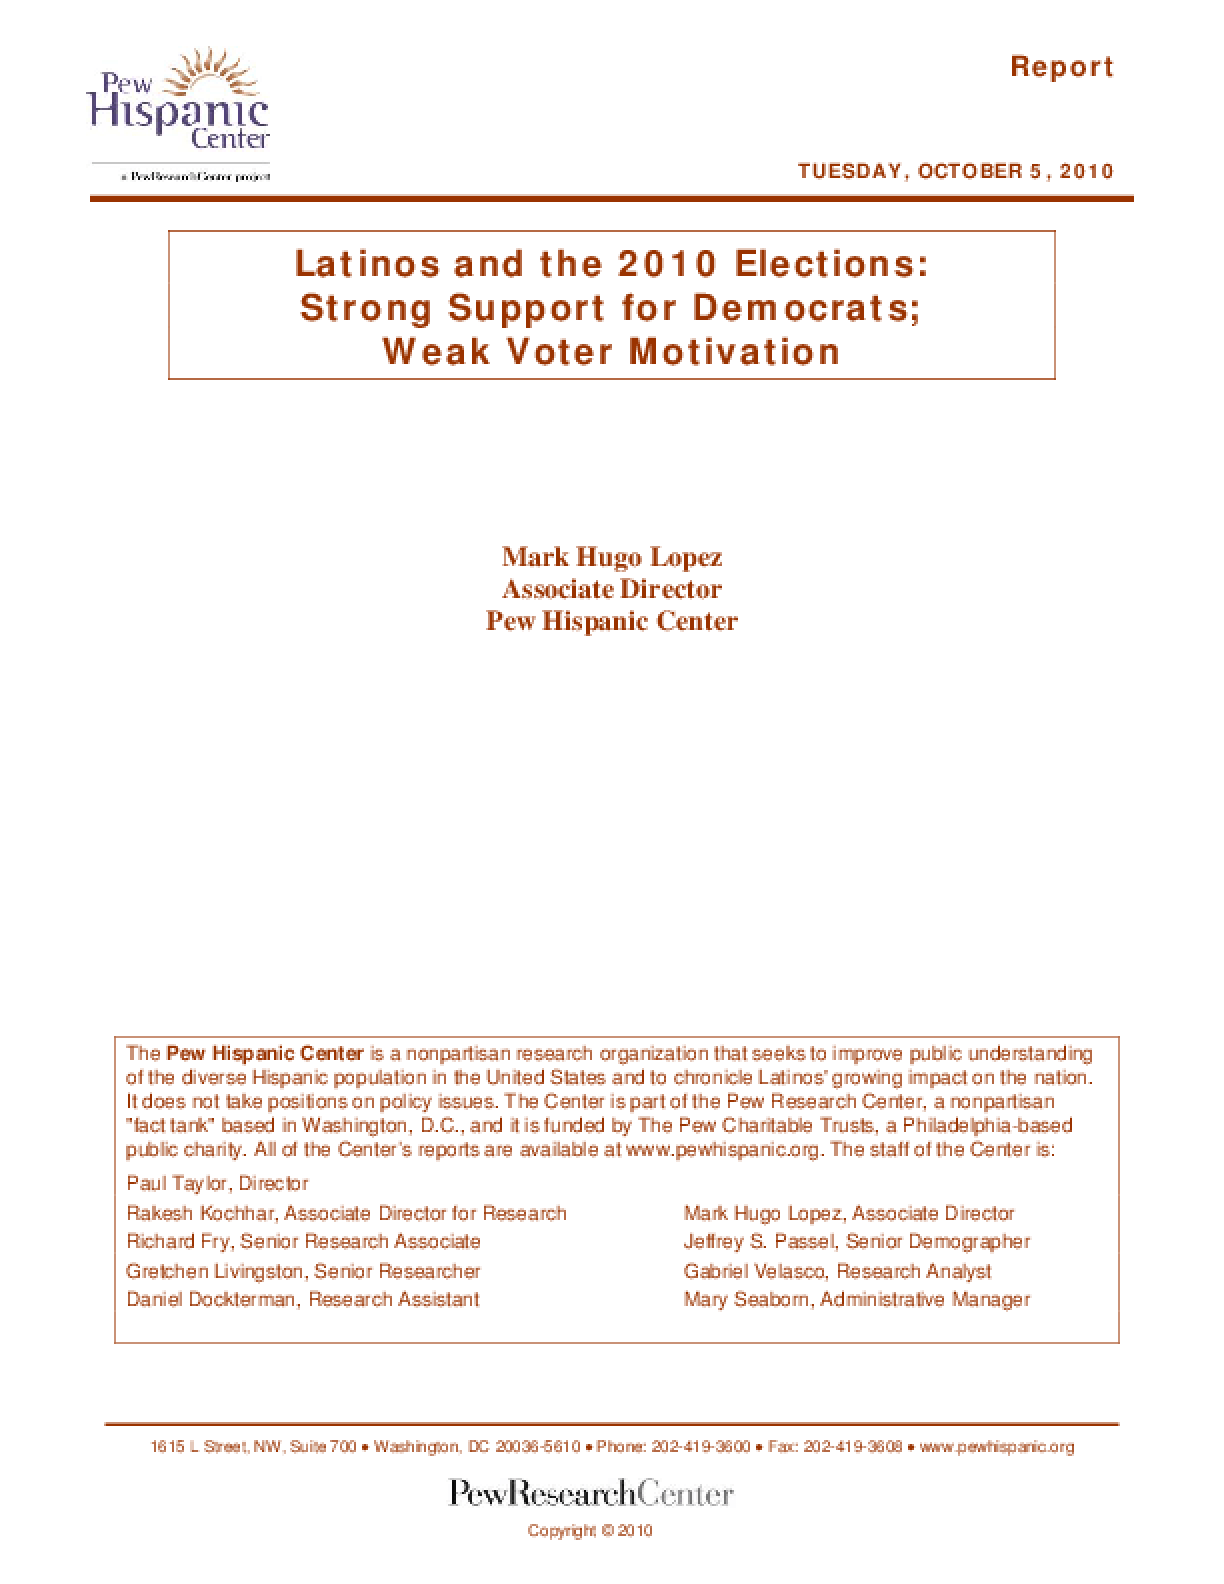 Latinos and the 2010 Elections: Strong Support for Democrats; Weak Voter Motivation